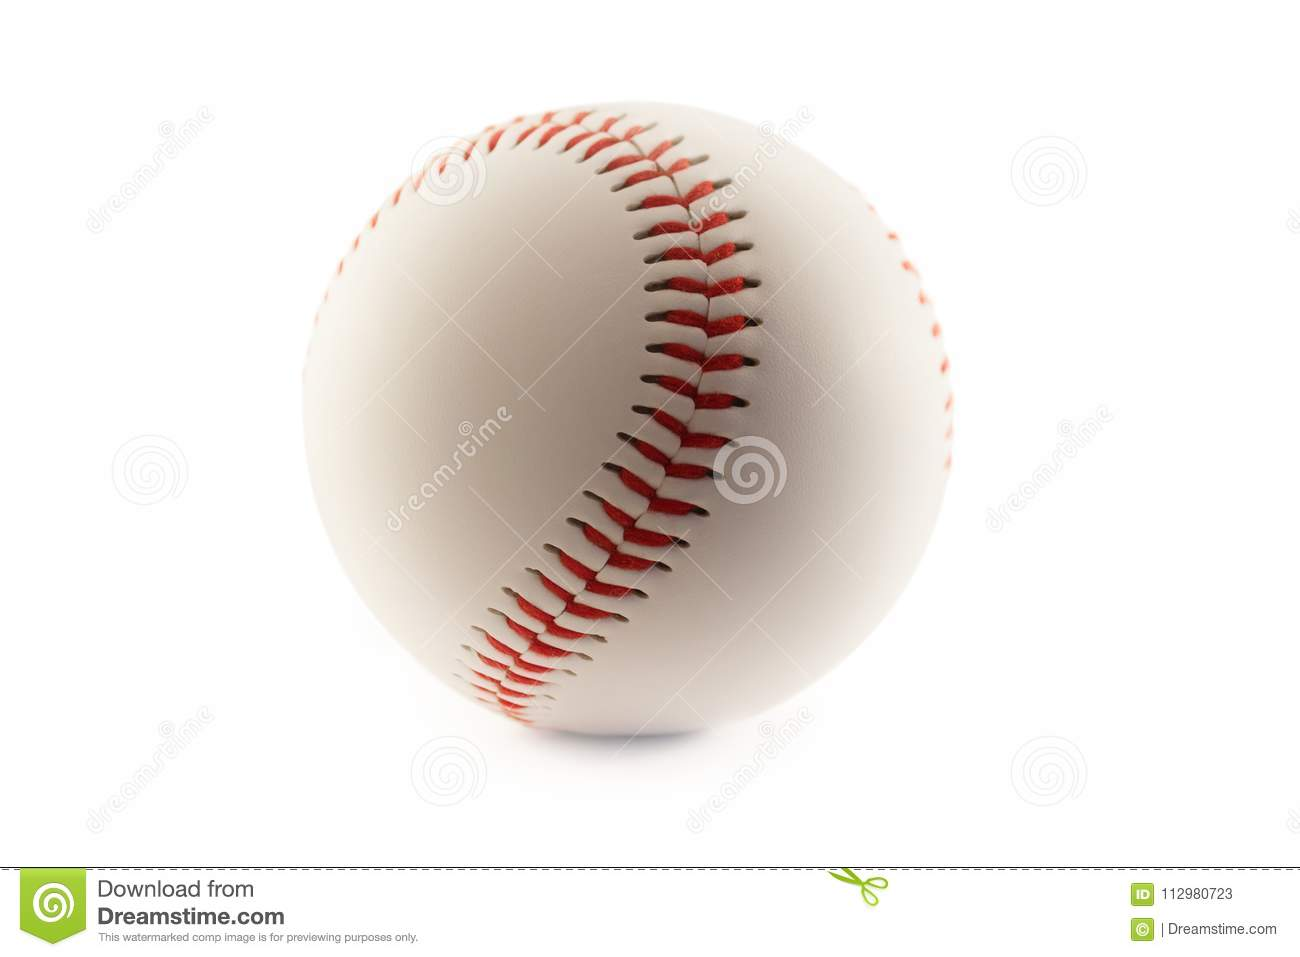 Baseball ball isolated in white background